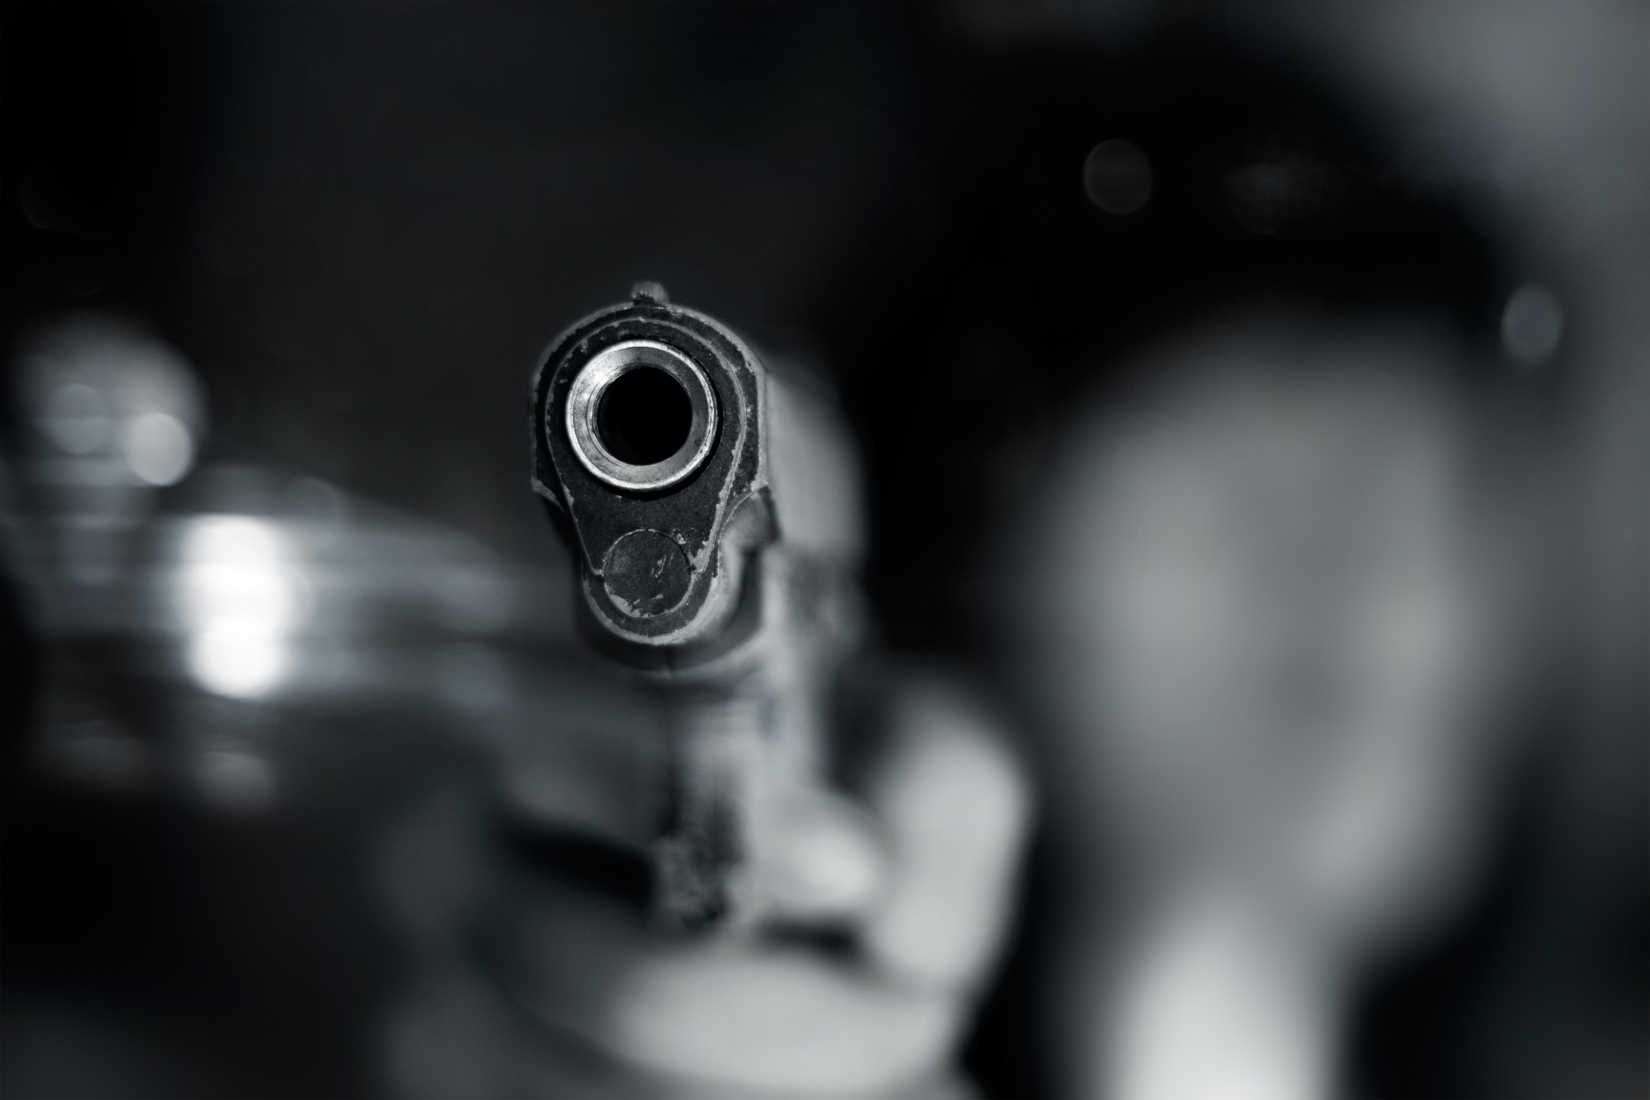 Elderly Woman Saves Her Husband by Shooting Intruder